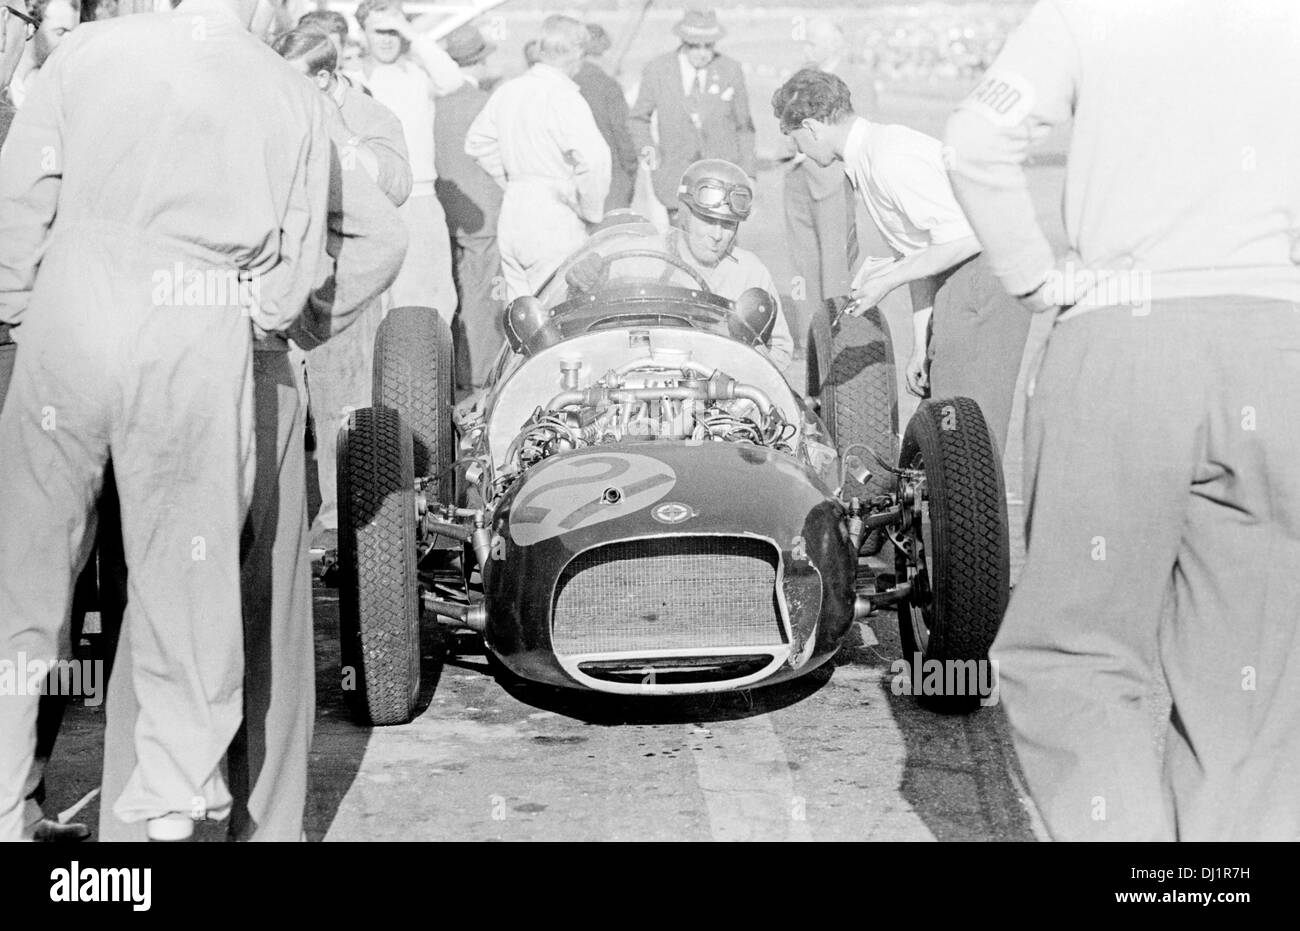 Ron Flockhart in the BRM V16 mark II chassis No '4', Formule Libre race at Snetterton, England 14 August 1954. - Stock Image